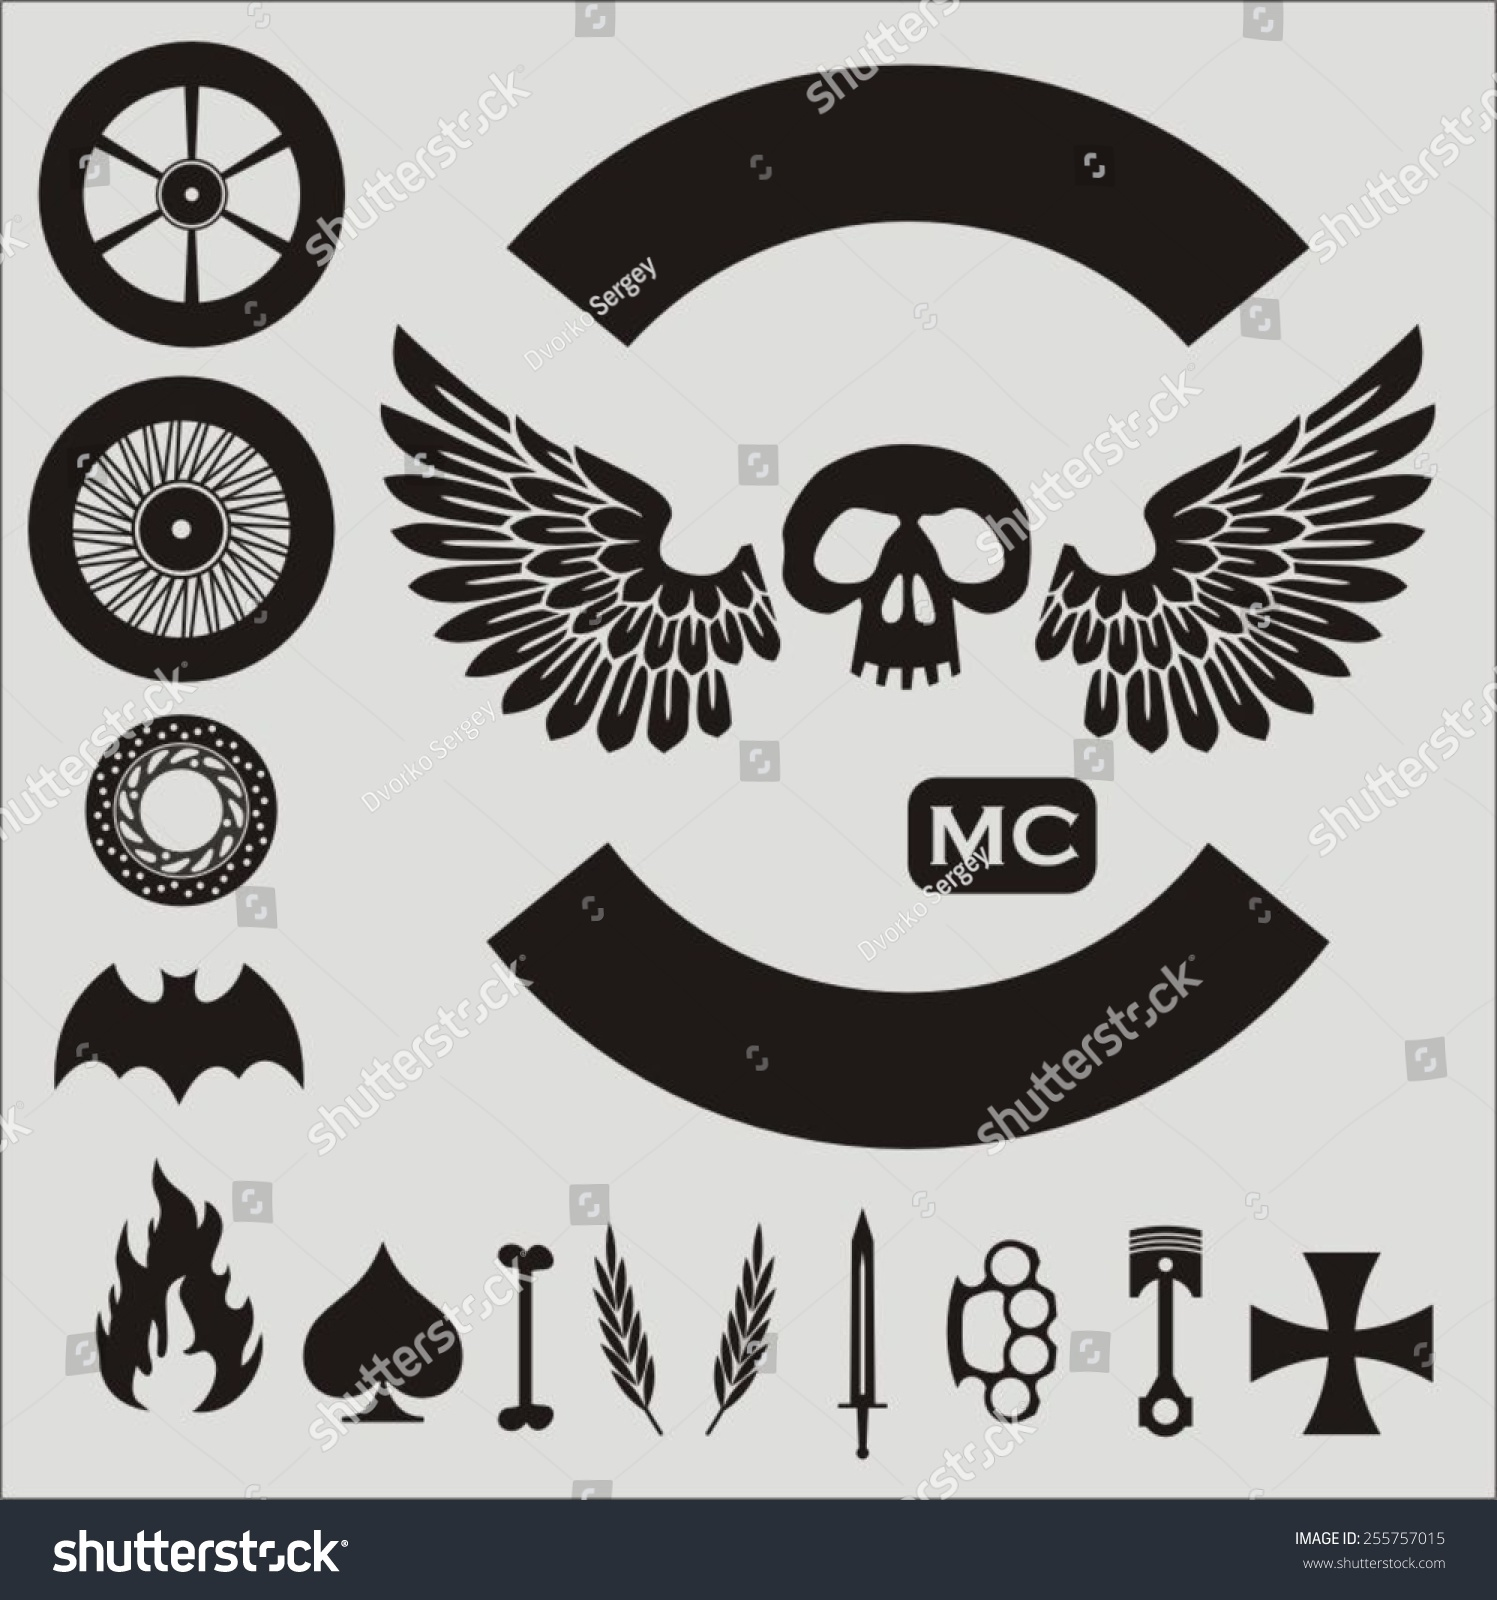 small motorcycle vector elements set template のベクター画像素材